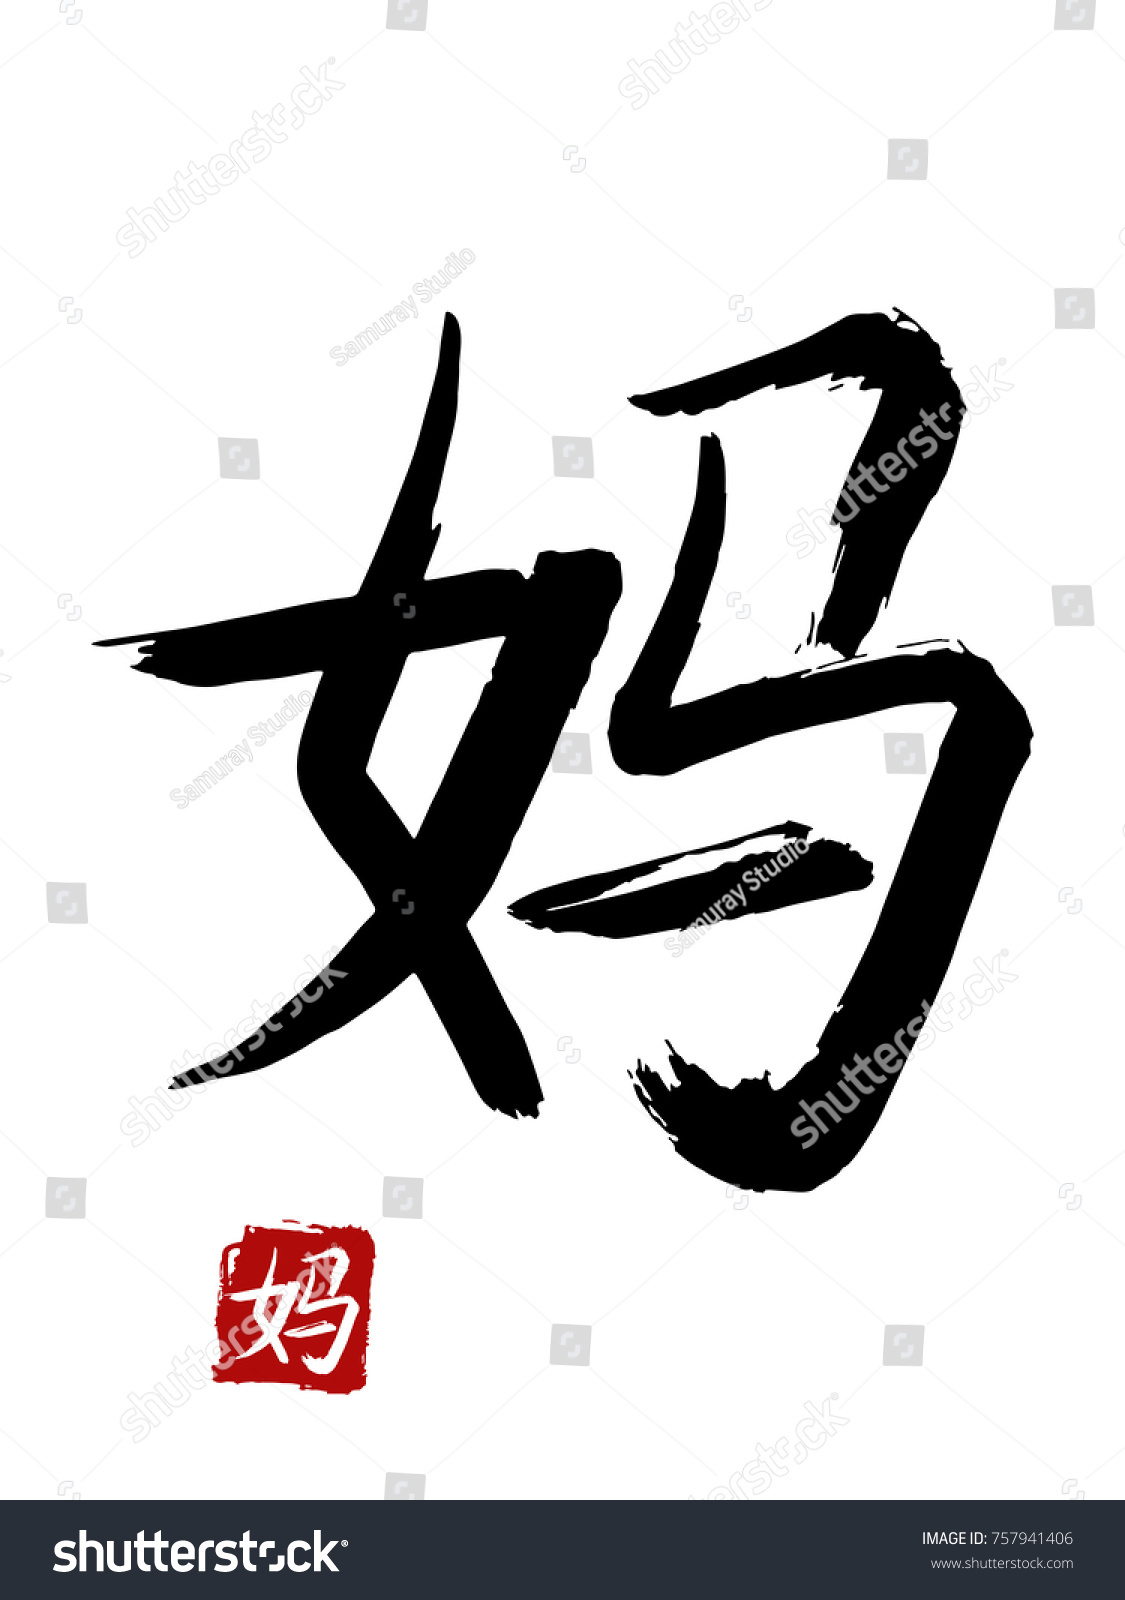 Mother In Chinese Symbol Image Collections Meaning Of This Symbol